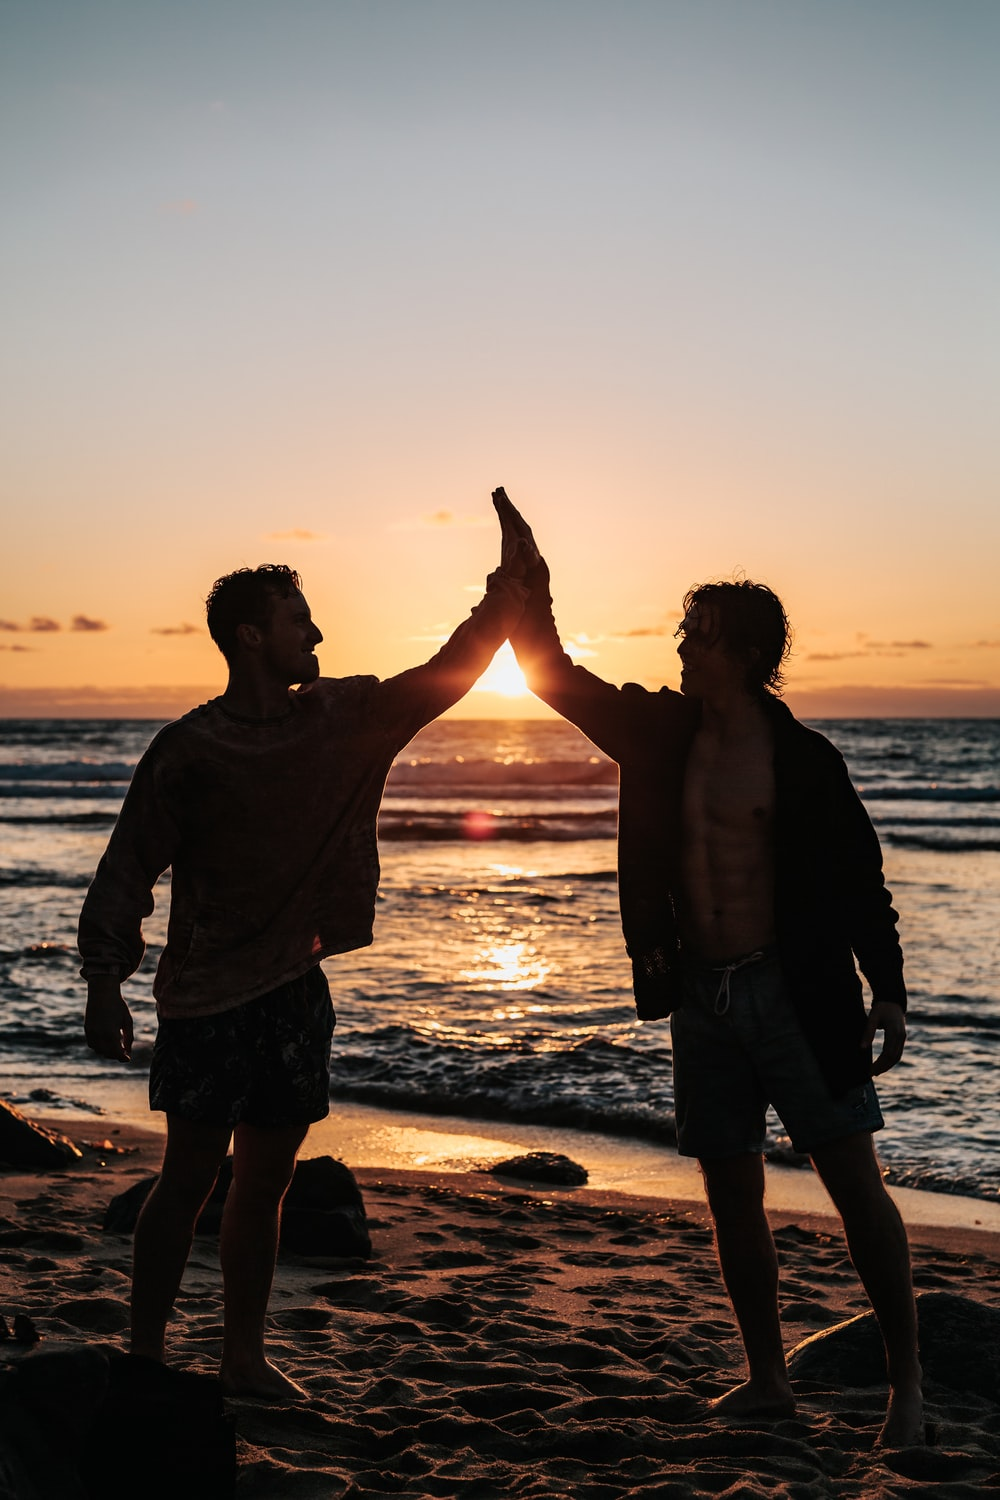 two men clapping each other on shore